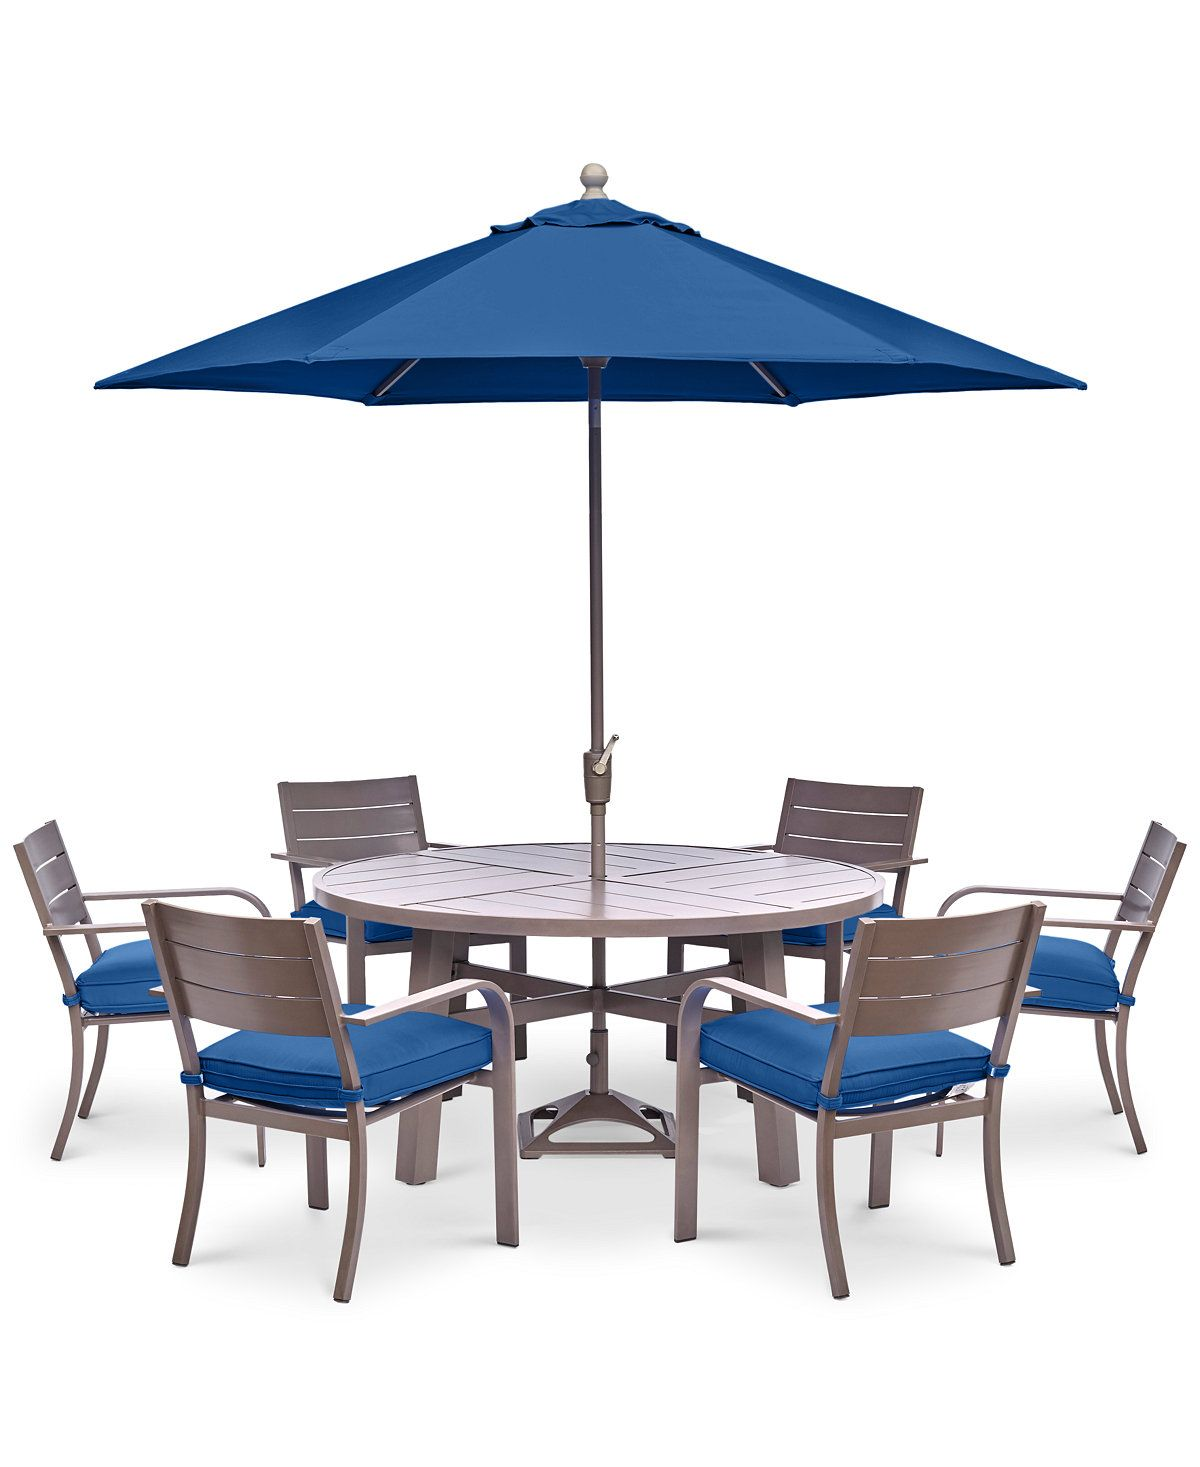 Macys Furniture Outlet Columbus: CLOSEOUT! Ocean Port Outdoor Aluminum 7-Pc. Dining Set (60